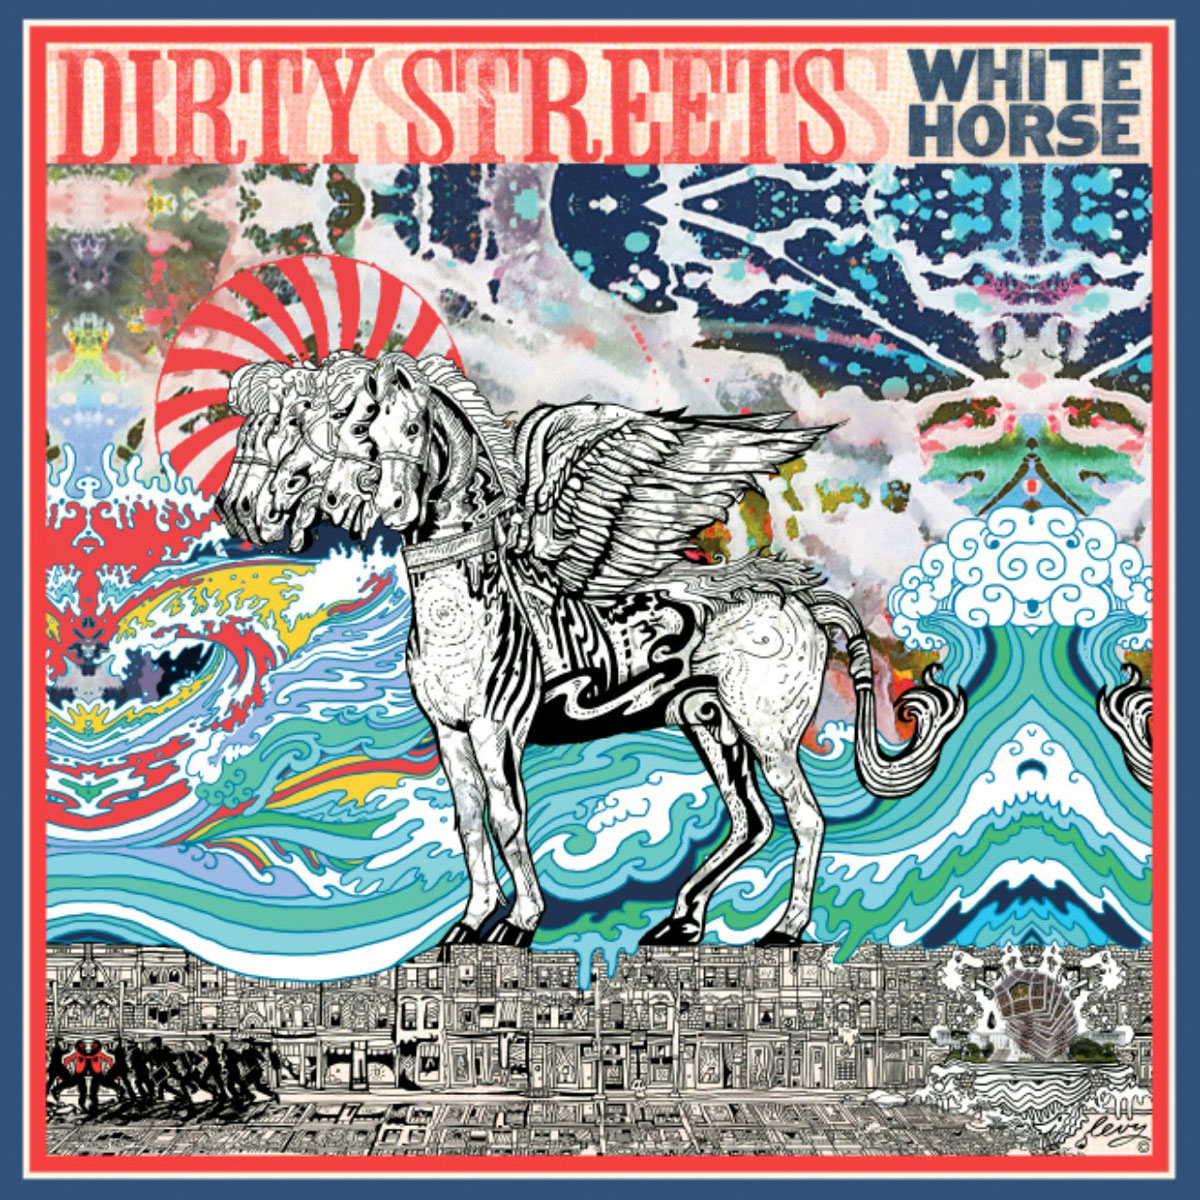 dirty-streets-white-horse